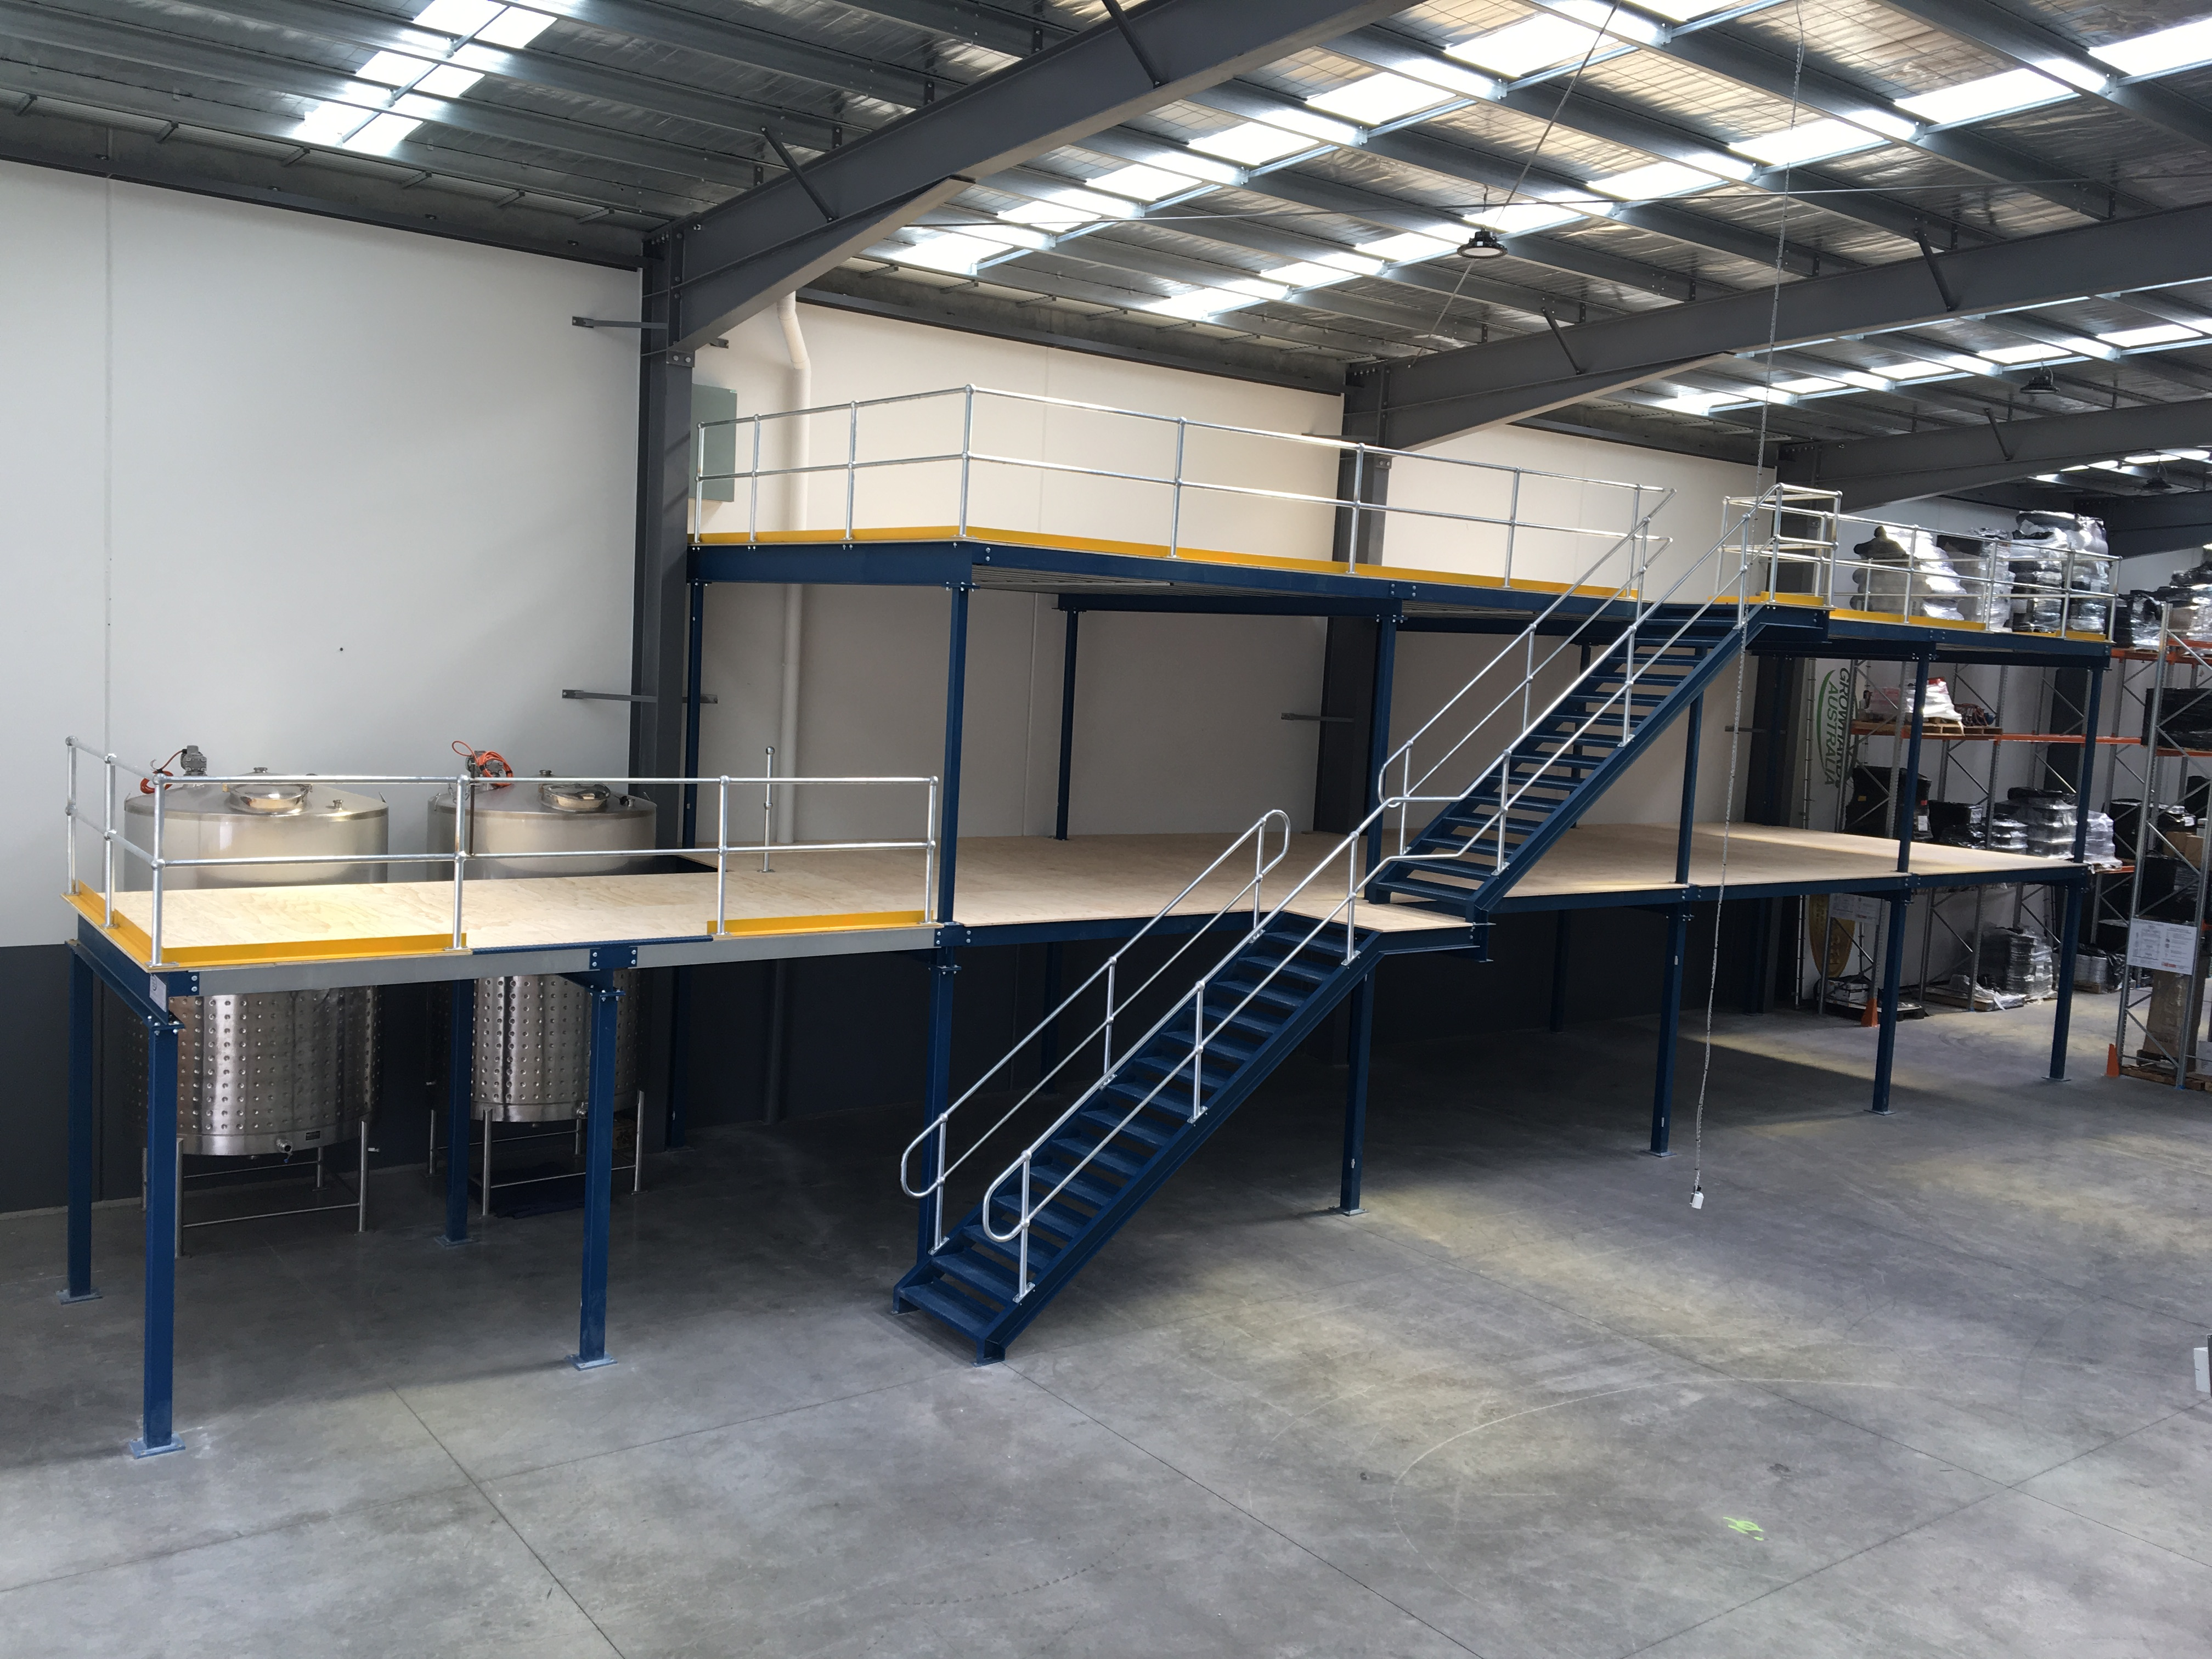 mezzanine floors in warehouse